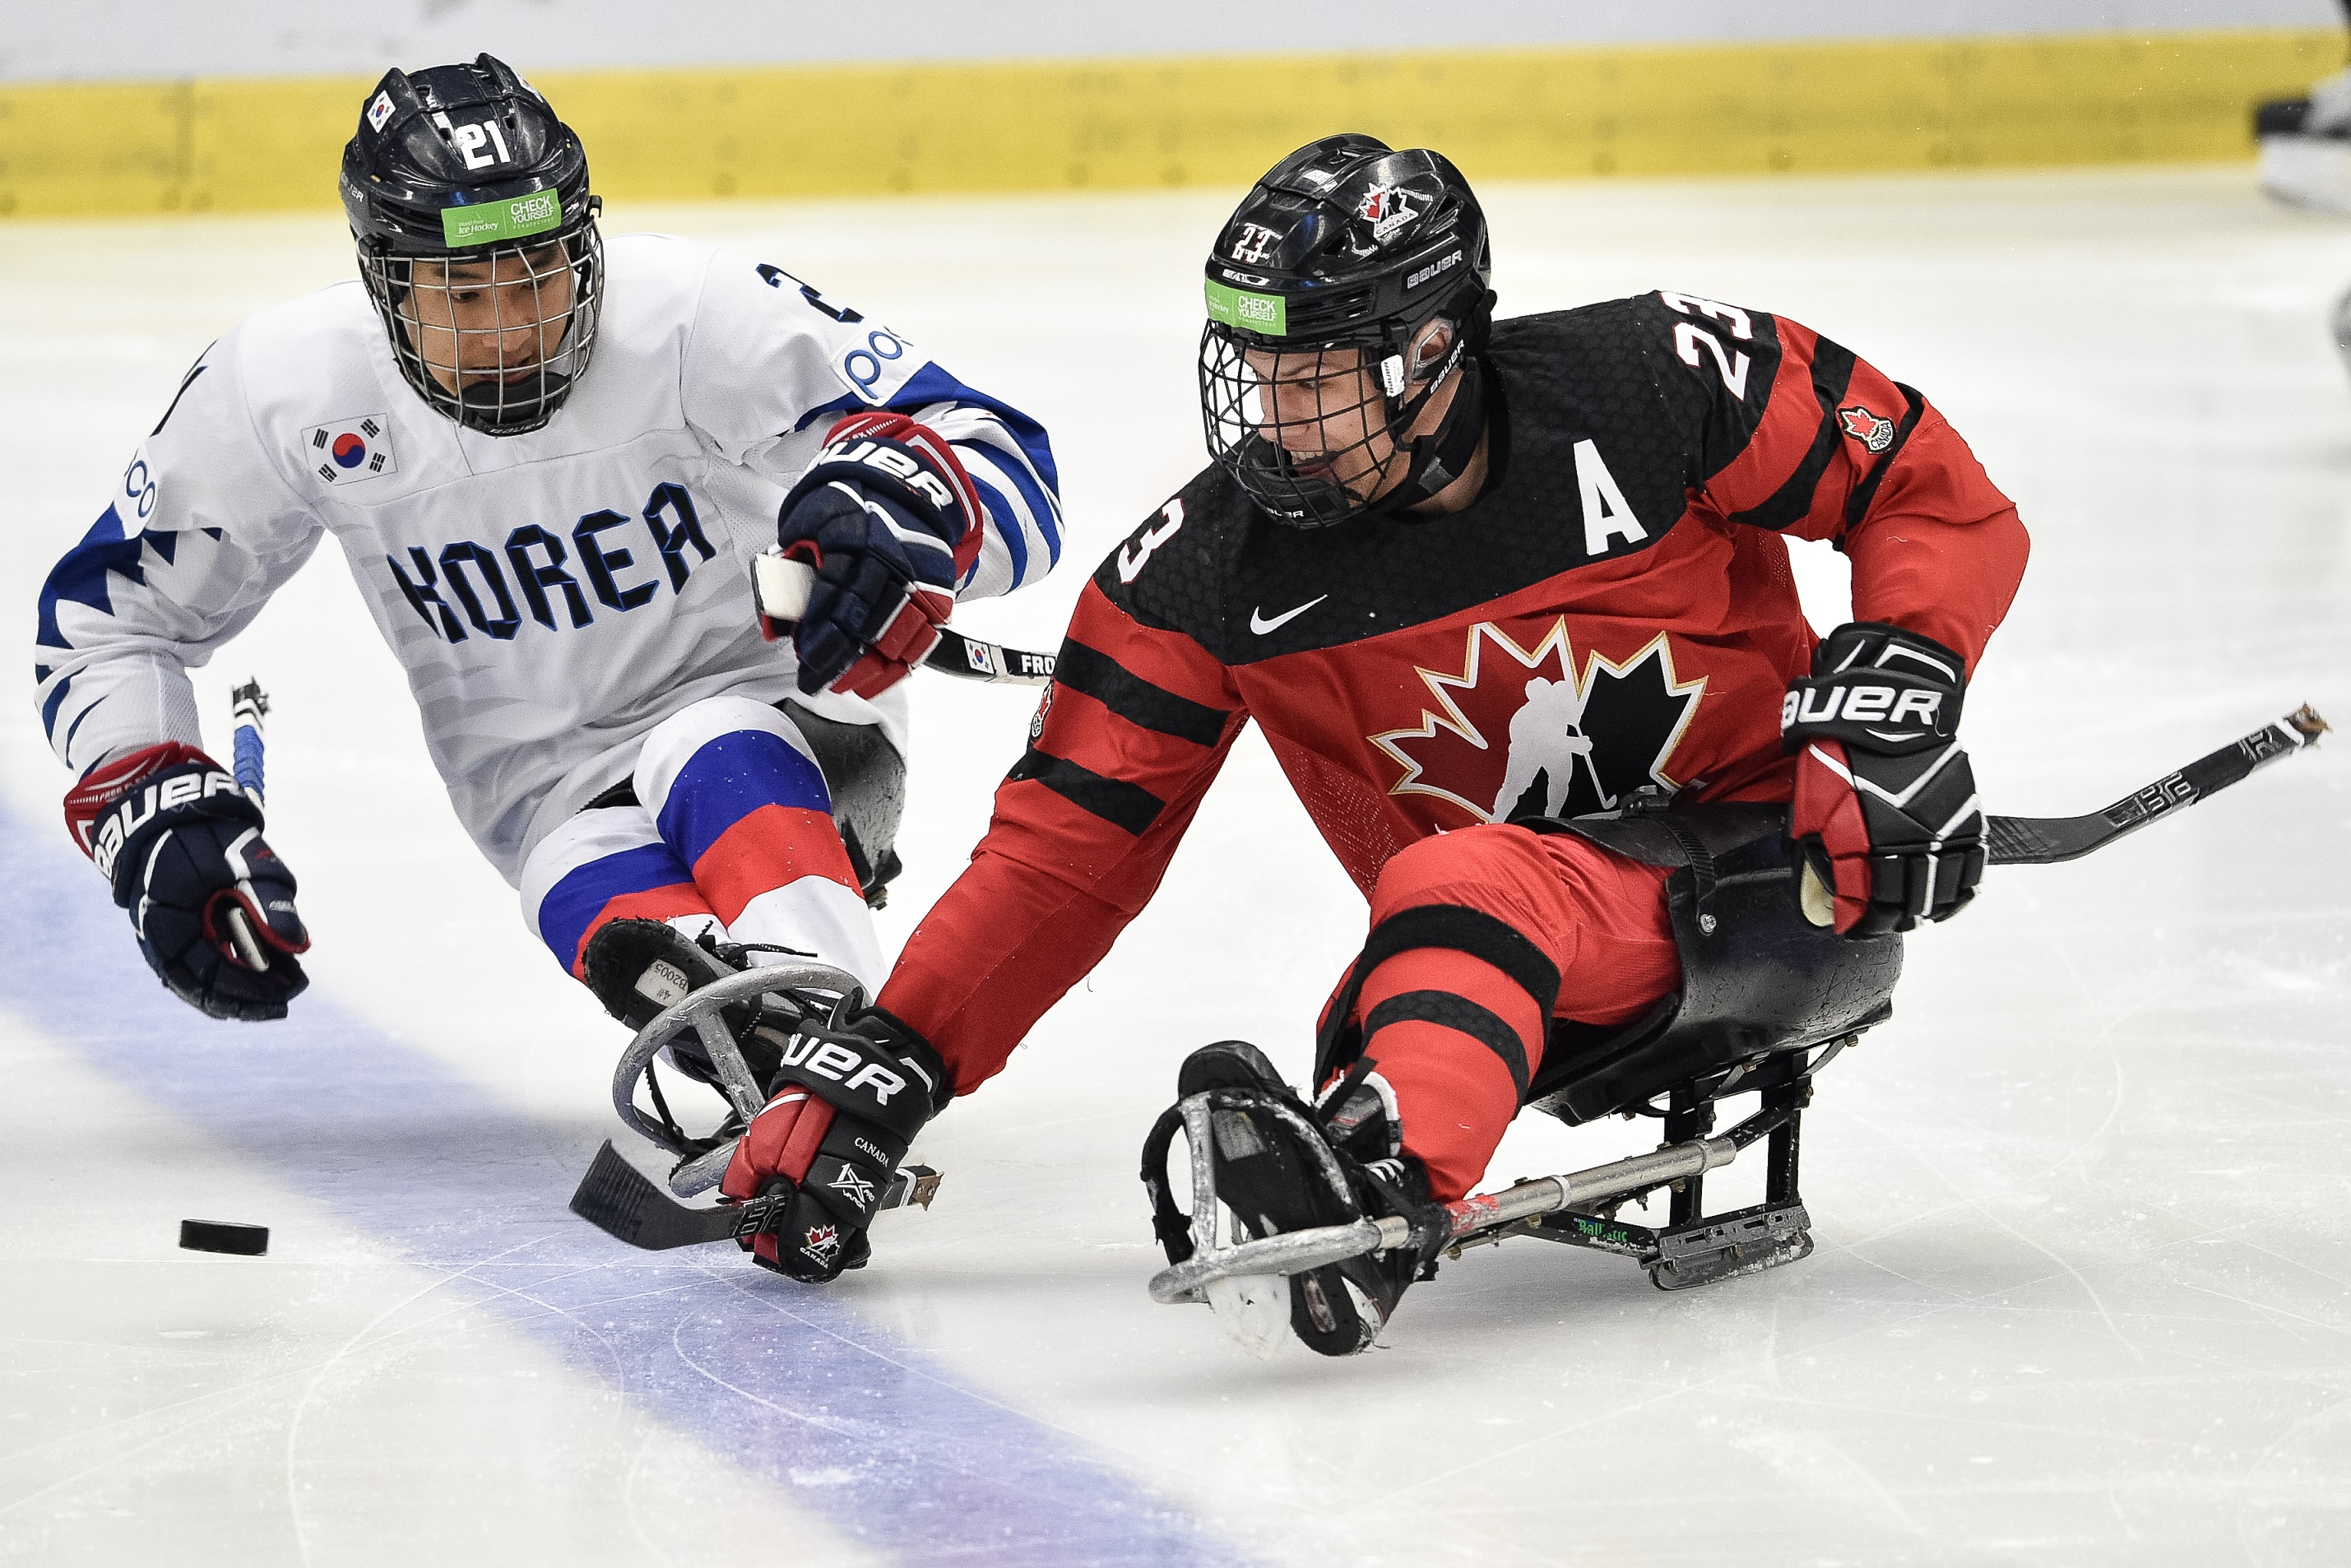 Liam Hickey in action at the 2019 World Para Ice Hockey Championships